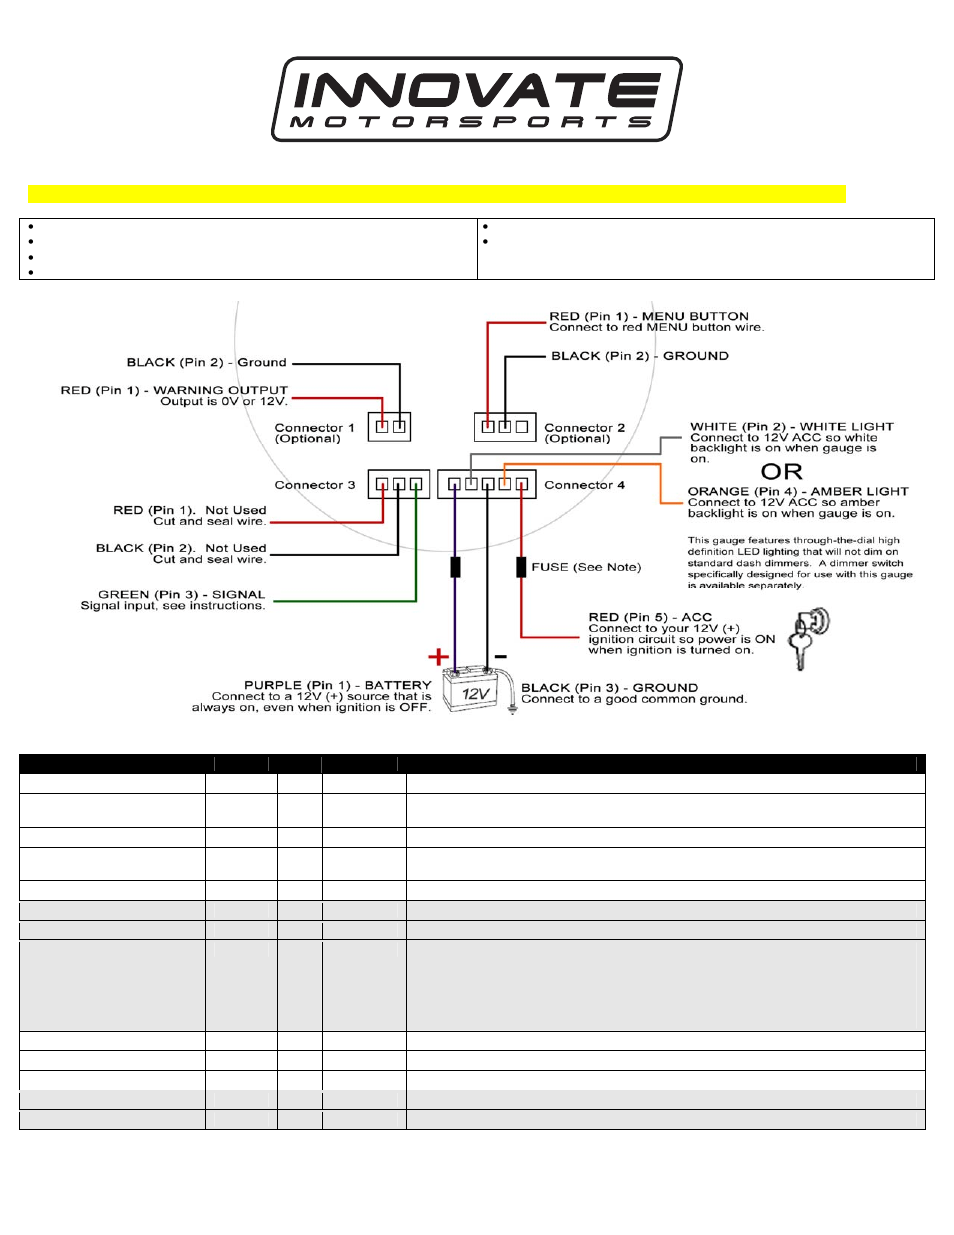 hight resolution of wiring diagram innovate blog wiring diagram wiring diagram innovate wideband o2 wiring innovate wideband wiring